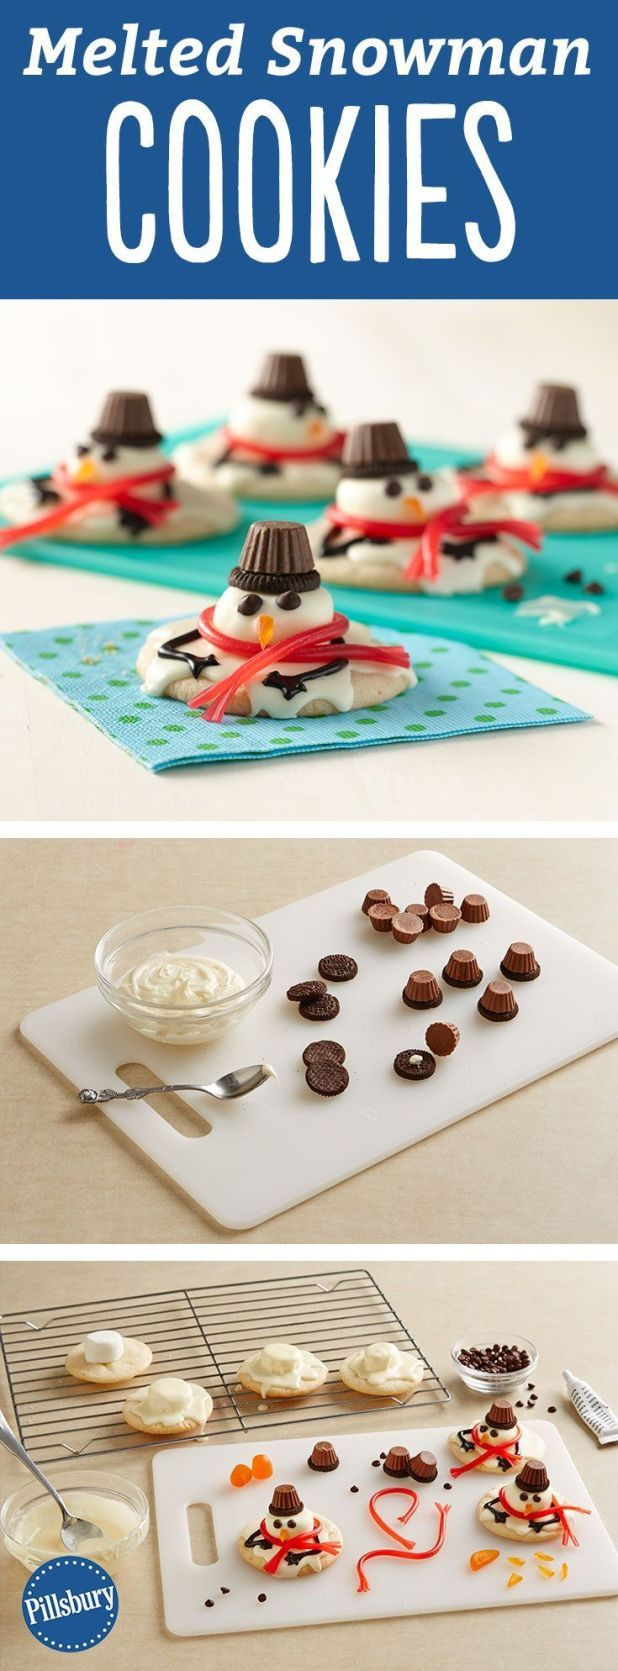 Photo of Melted Snowmen Cookies #Cookies #Melted #snowmen